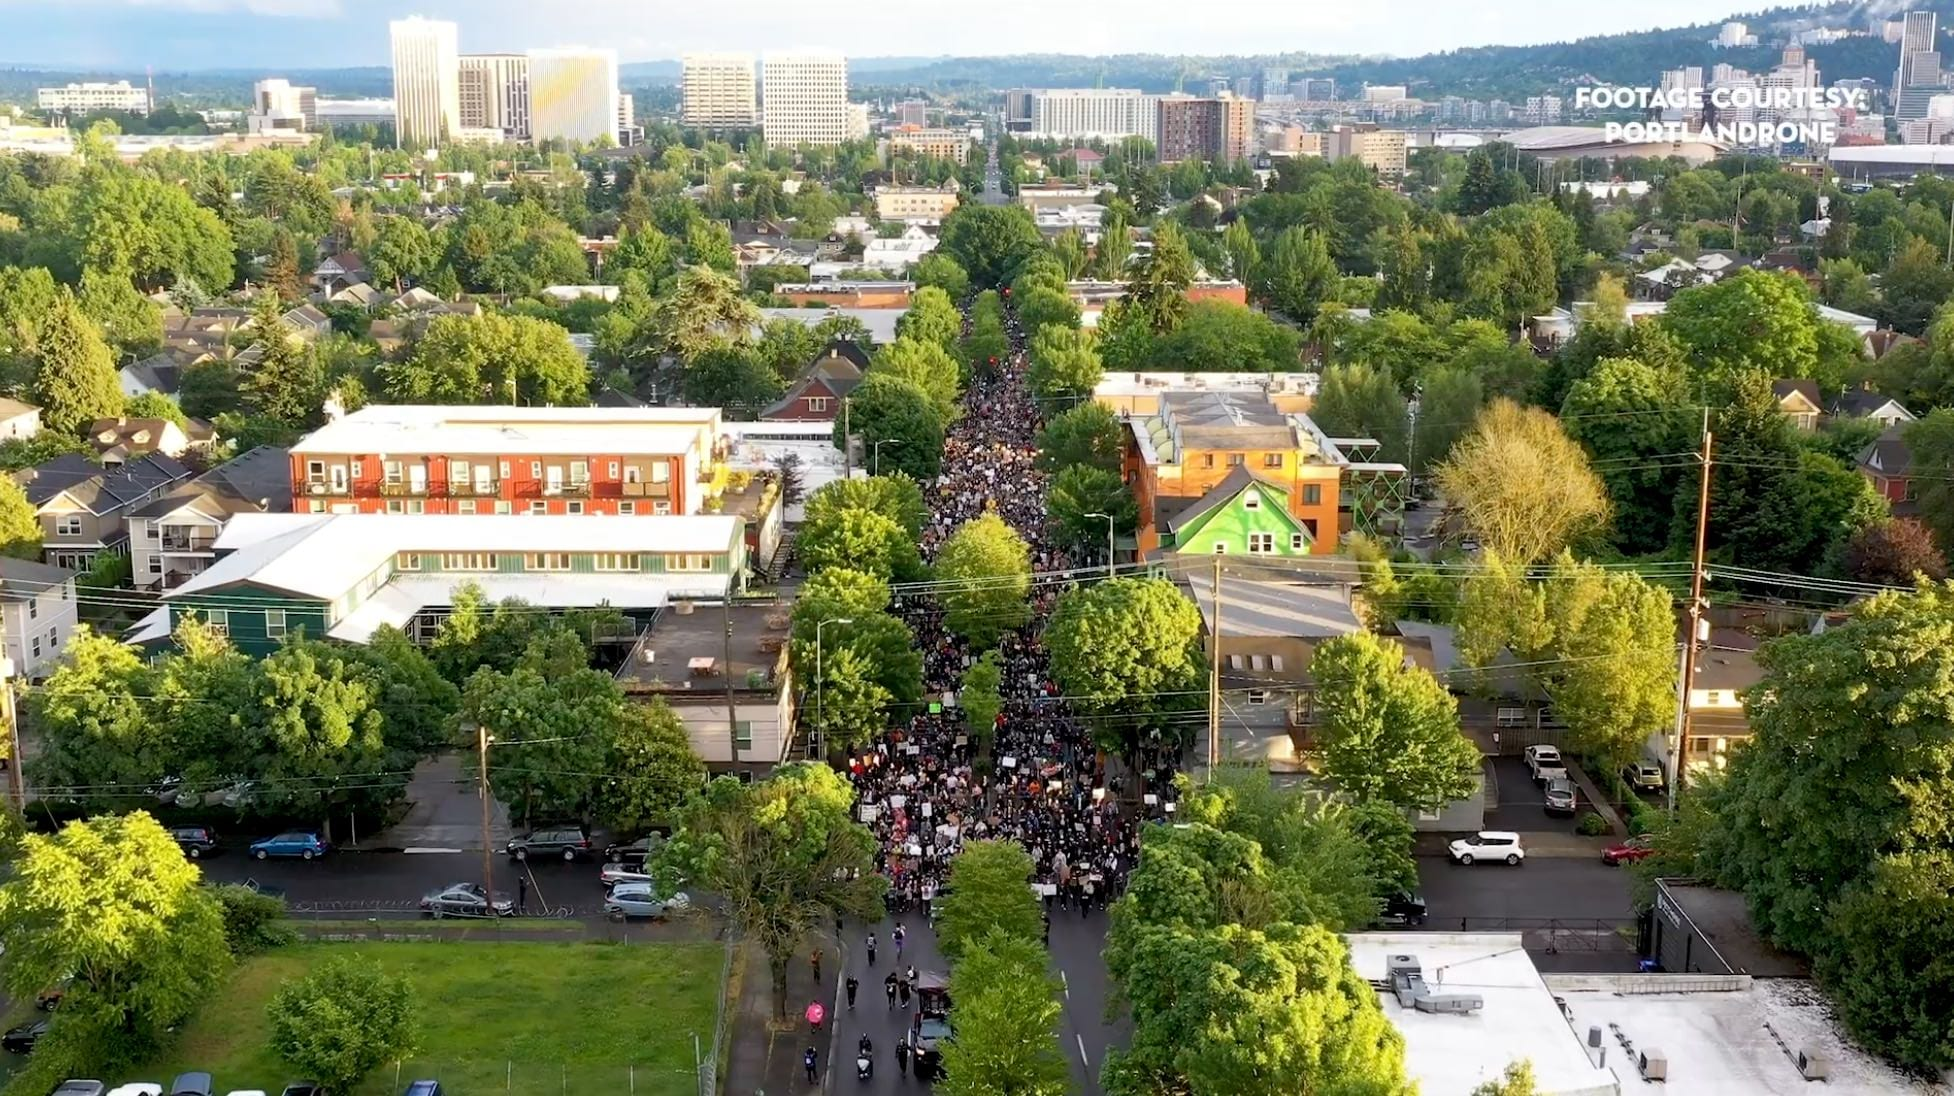 Capturing protesting crowds by drone safely without needing an FAA waiver